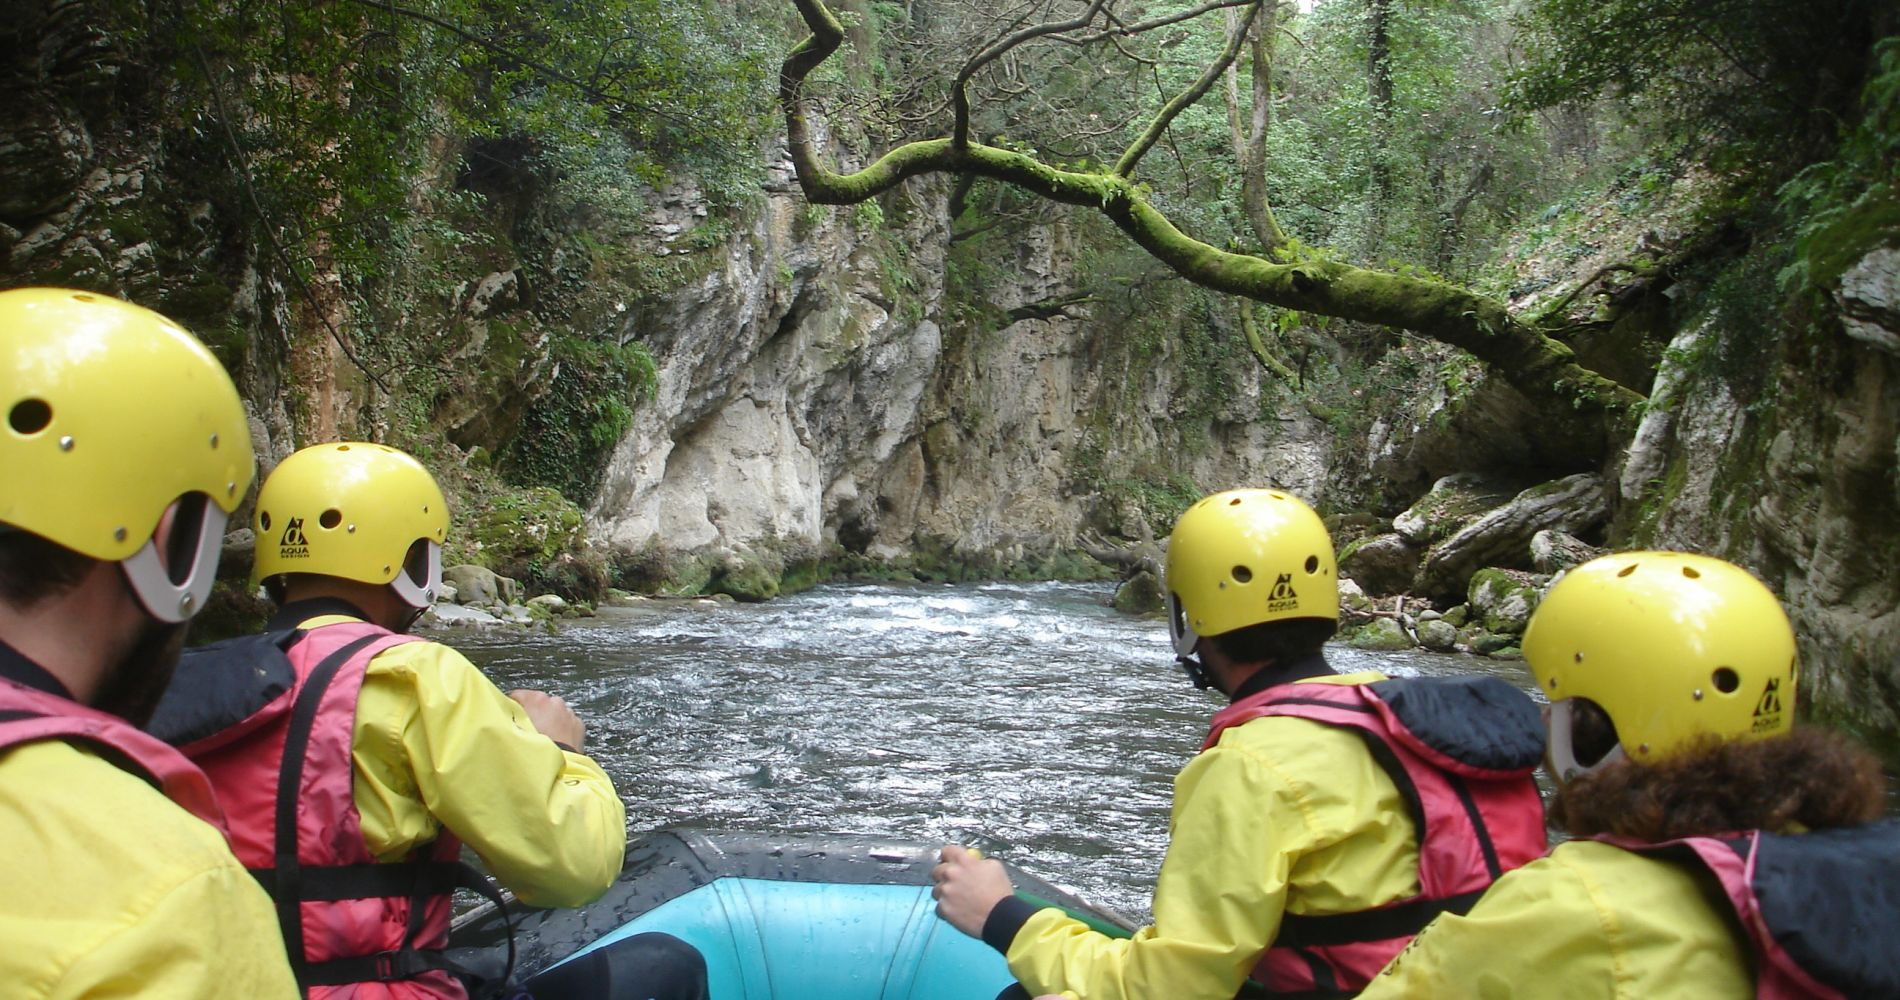 Rafting Lousios Gorge Greece tinggly experience gift